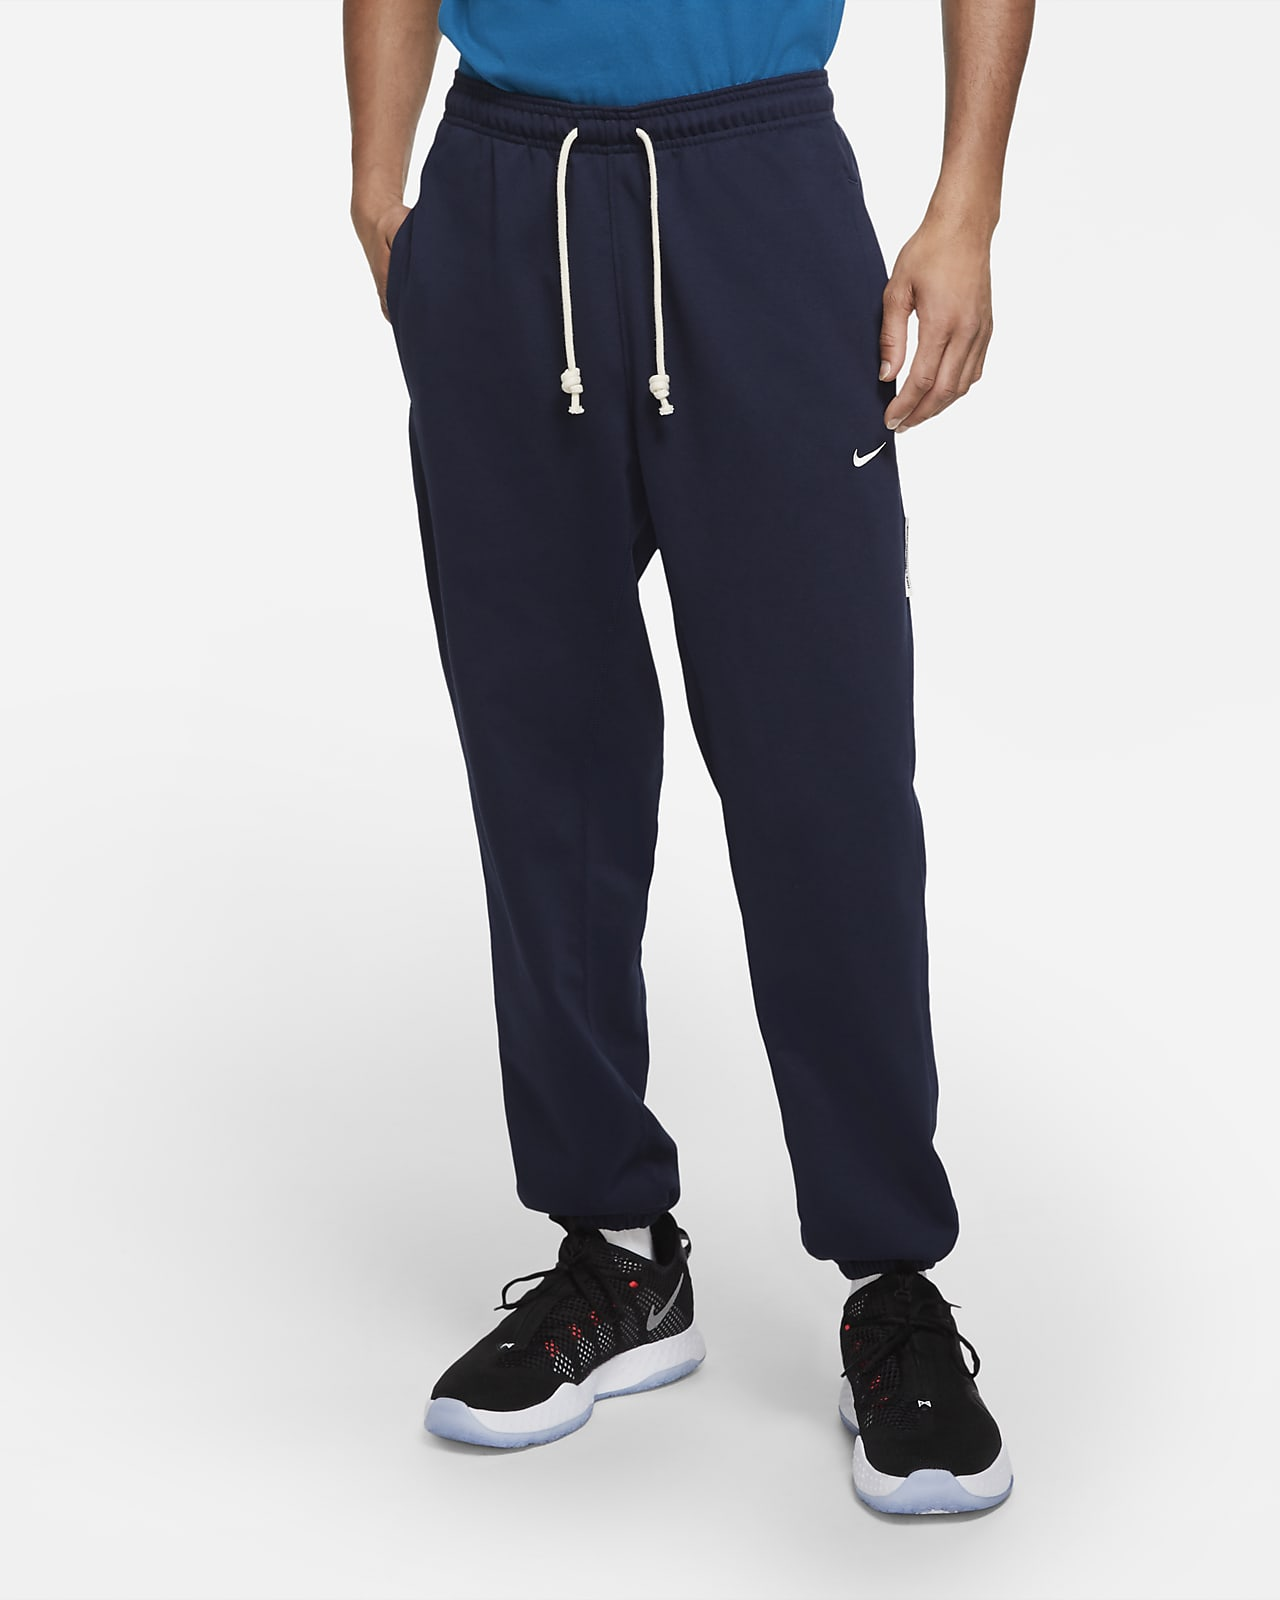 Nike Dri-FIT Standard Issue Men's Basketball Trousers